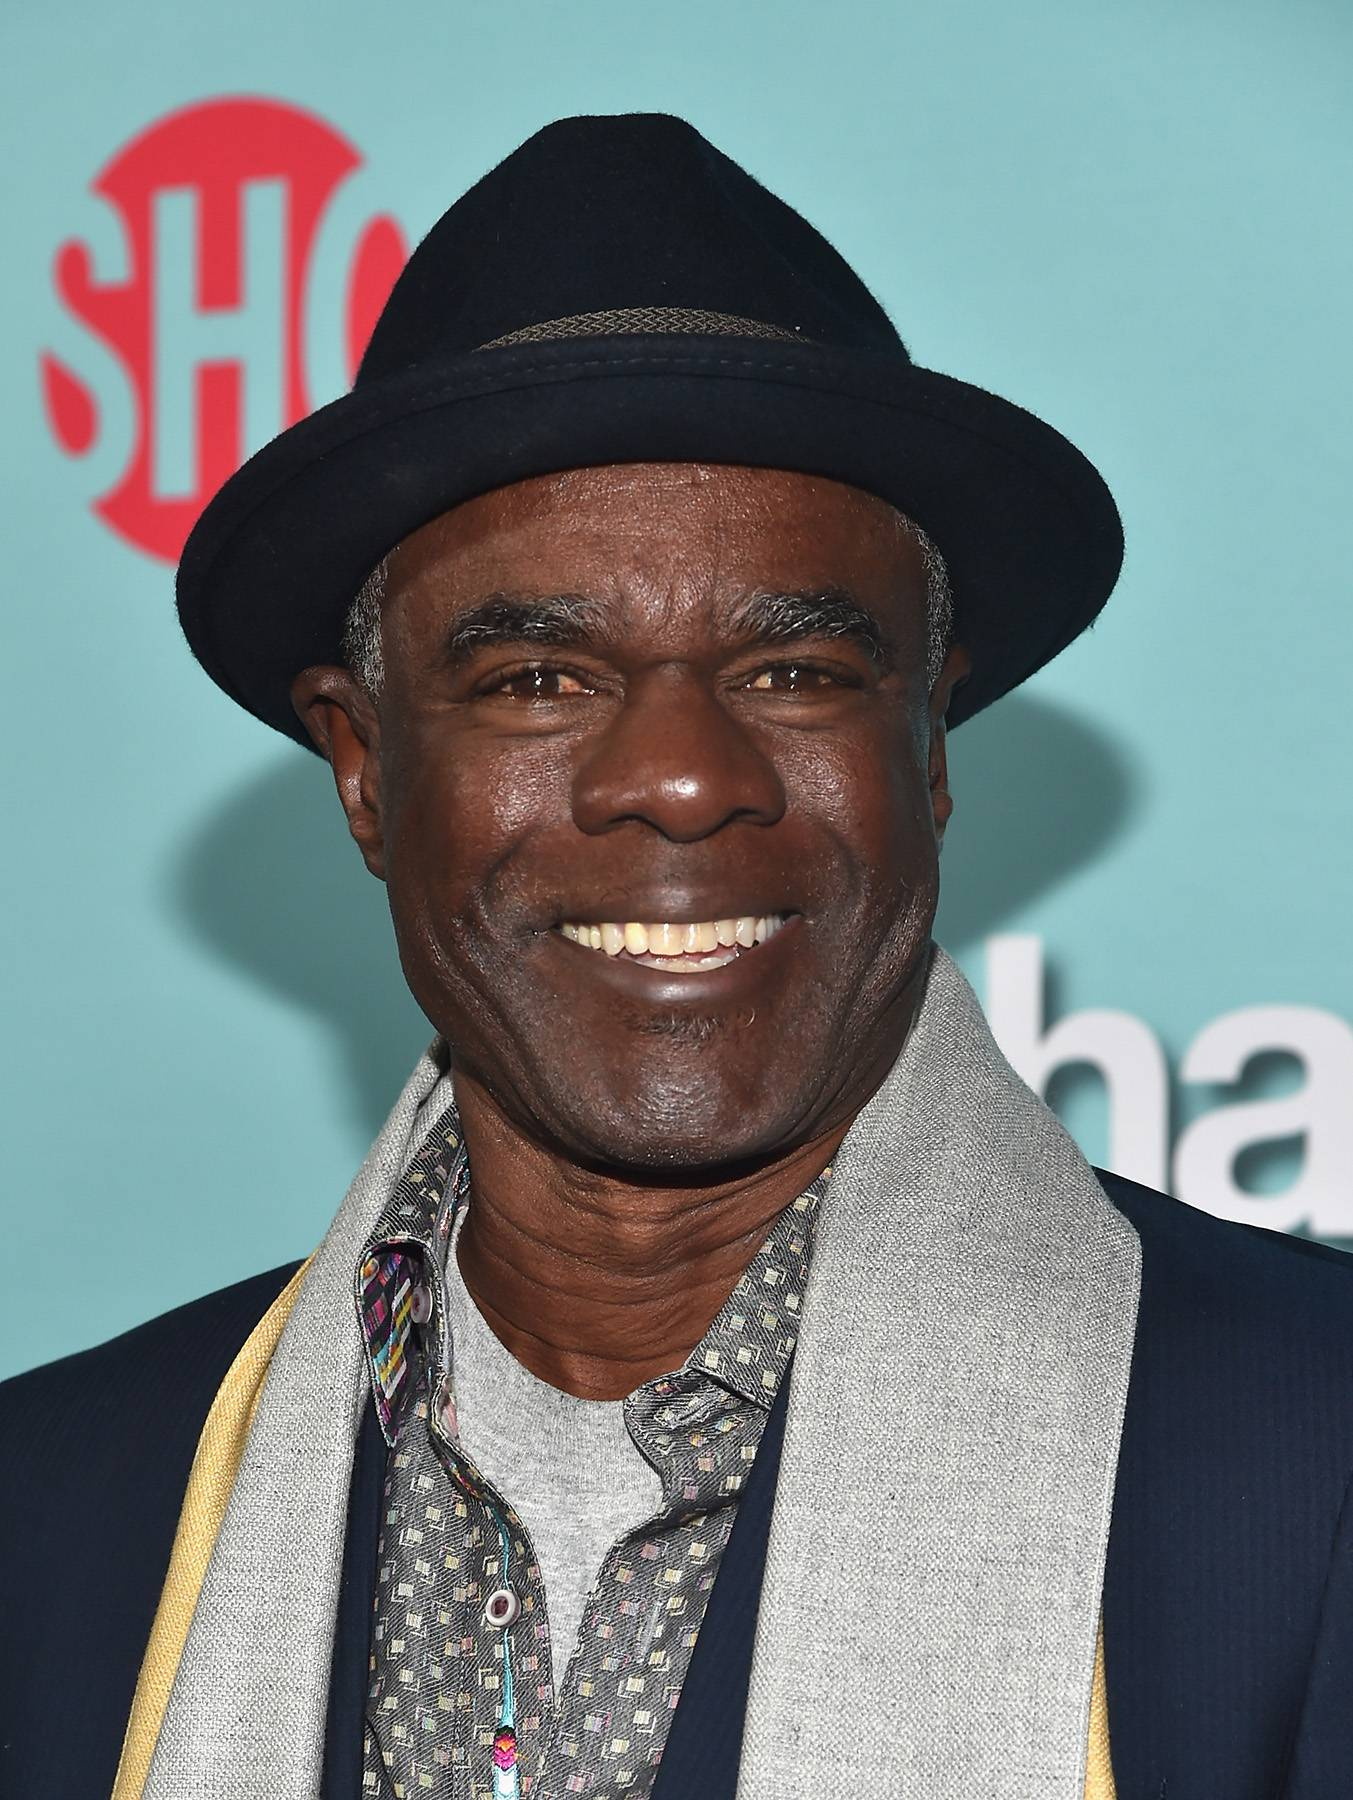 Glynn Turman - He's been Col. Bradford Taylor on A Different World toMayor Clarence V. Royce on The Wire, and currently stars as Jeremiah Kaan on the hit series House of Lies. Now Glynn Turman will take the stage to as one of the talented entertainers to present at The BET Honors '15 ceremony.(Photo: Alberto E. Rodriguez/Getty Images)